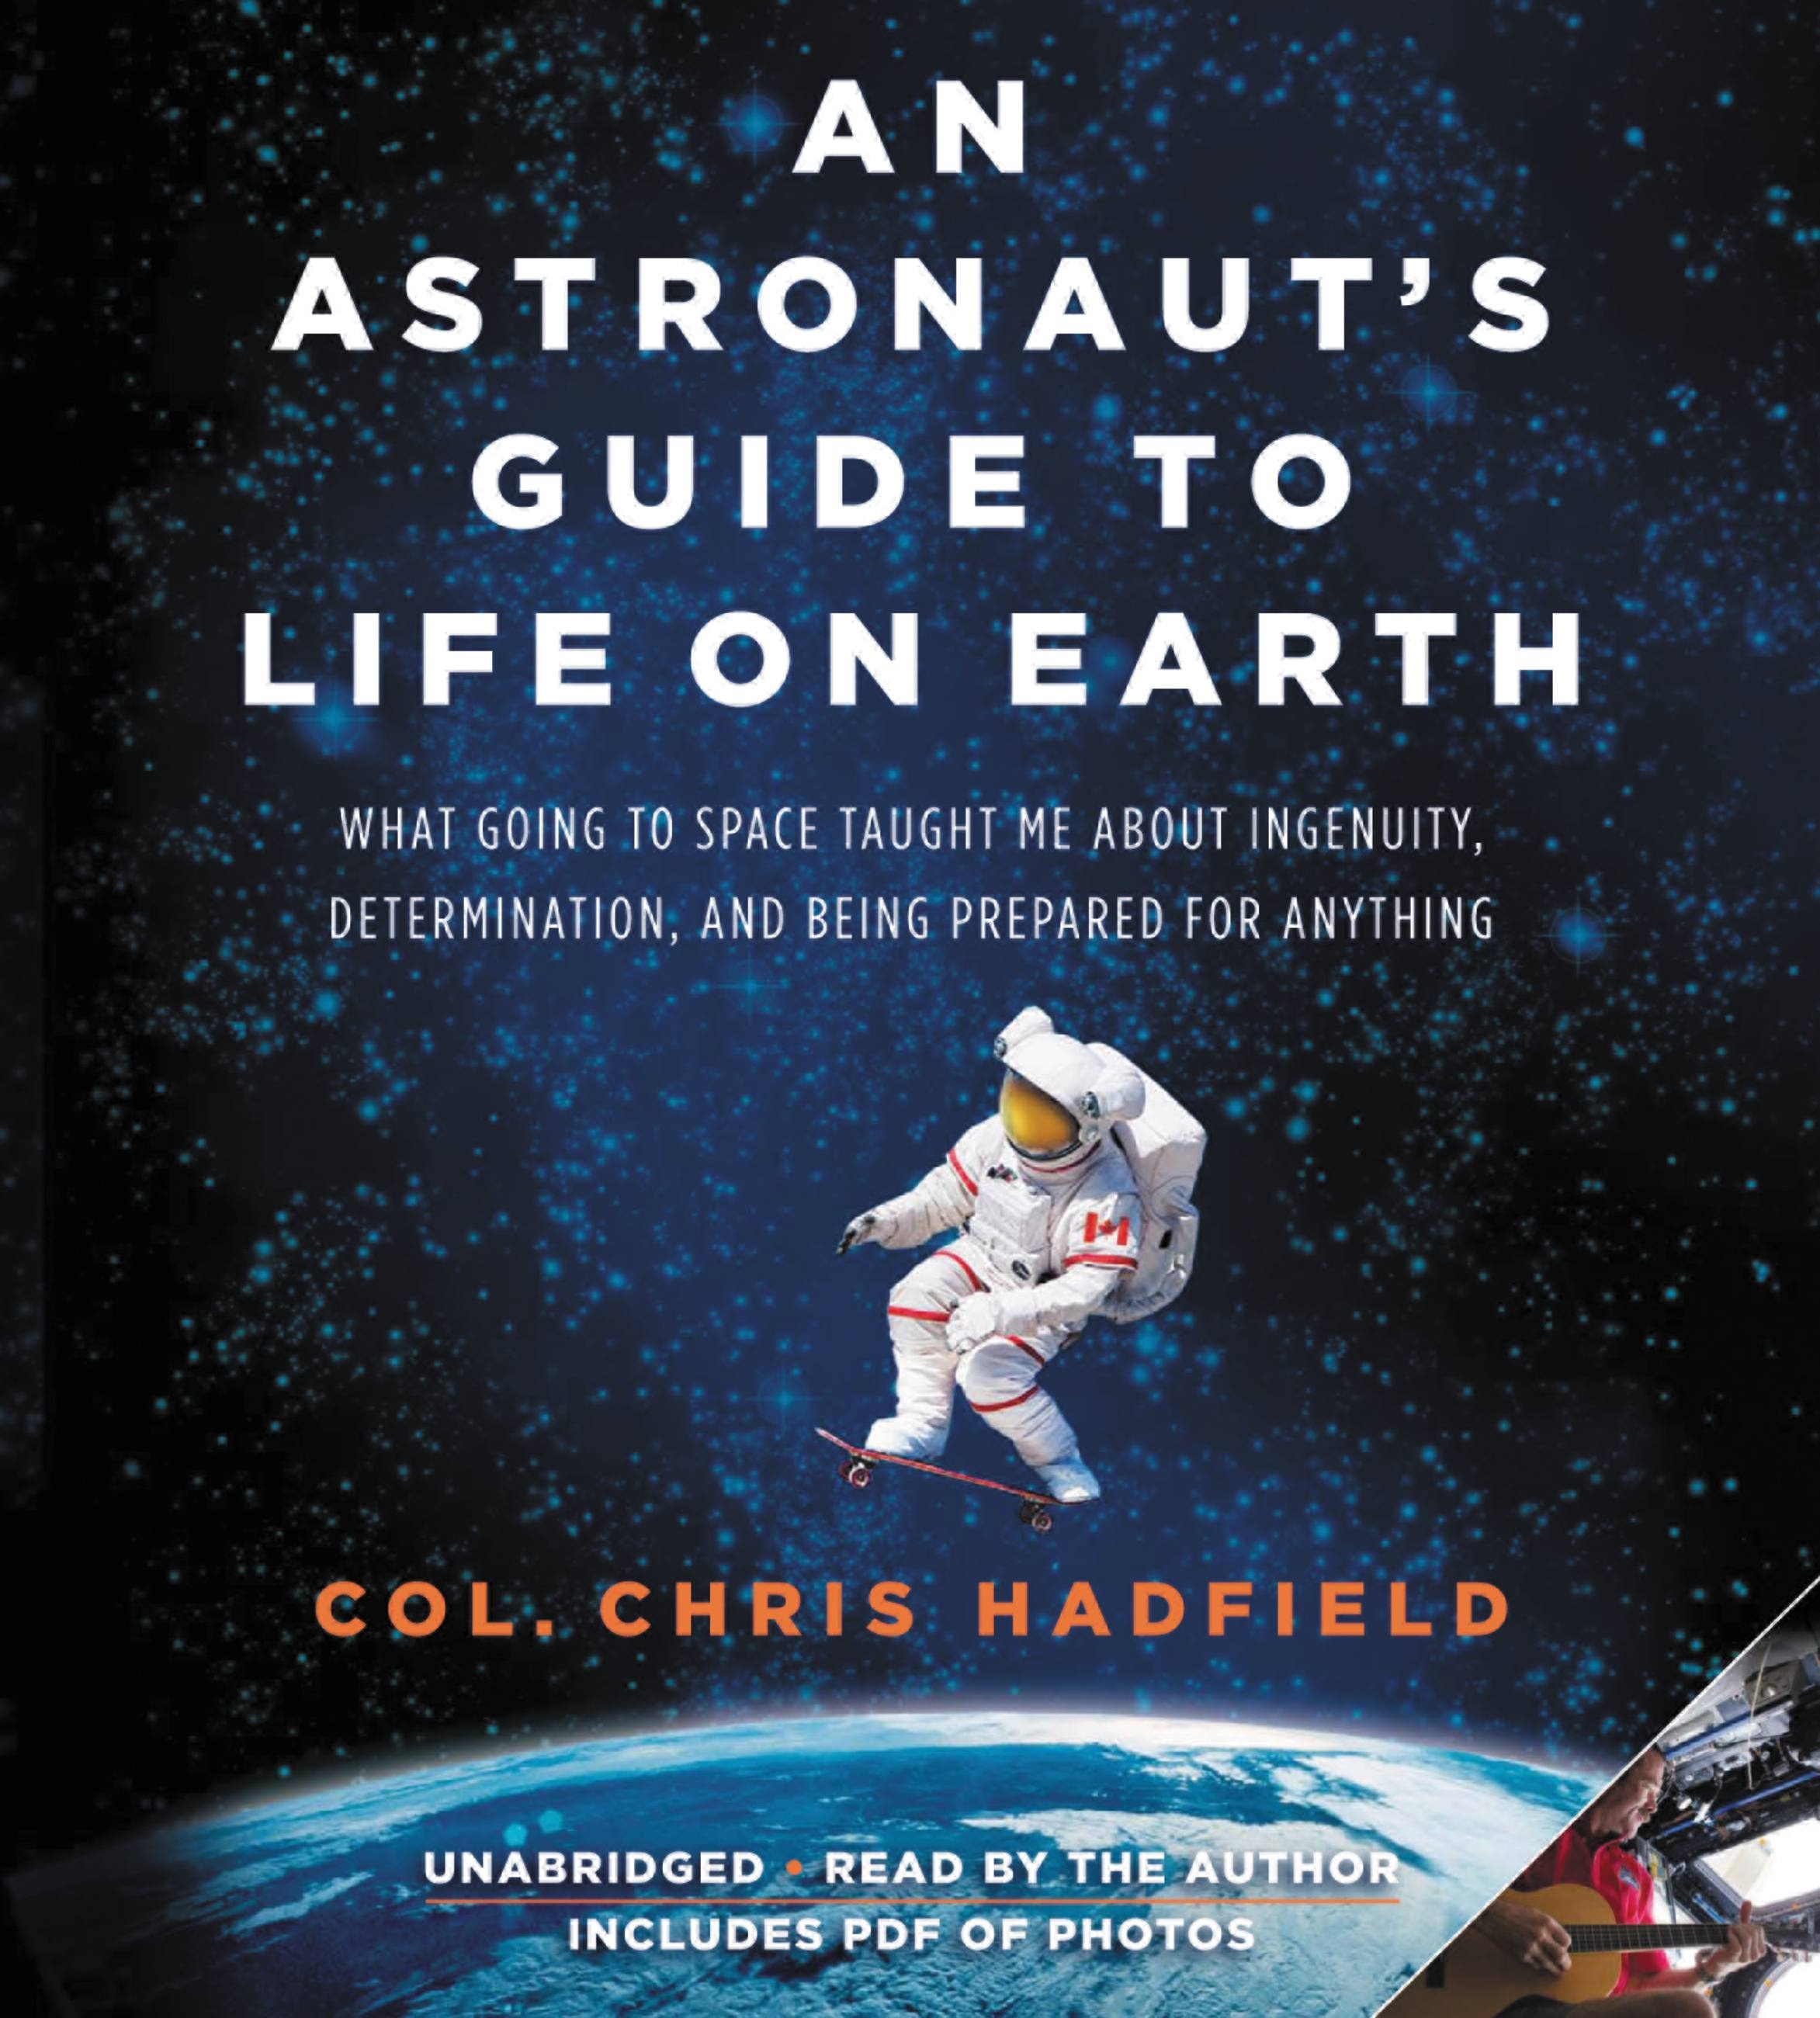 12 Angry Men Essay Questions A Critique Of An Astronauts Guide To Life On Earth By Chris Hadfield The Tempest Essay Topics also Essay About The Brain A Critique Of An Astronauts Guide To Life On Earth By Chris Hadfield  Essays Topics For High School Students